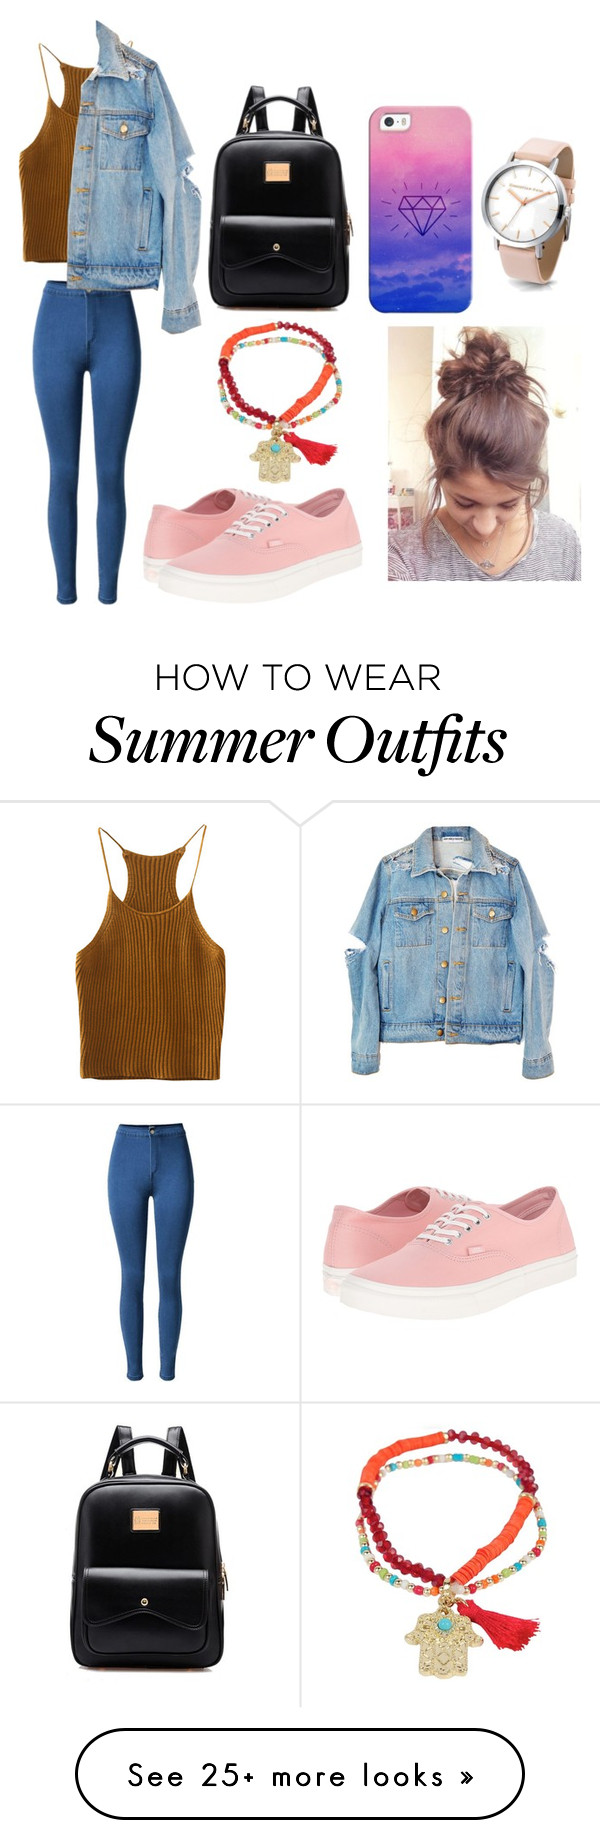 """""""Feels okay in this outfit"""" by destgreen on Polyvore featuring Sugar NY, Vans and Casetify"""